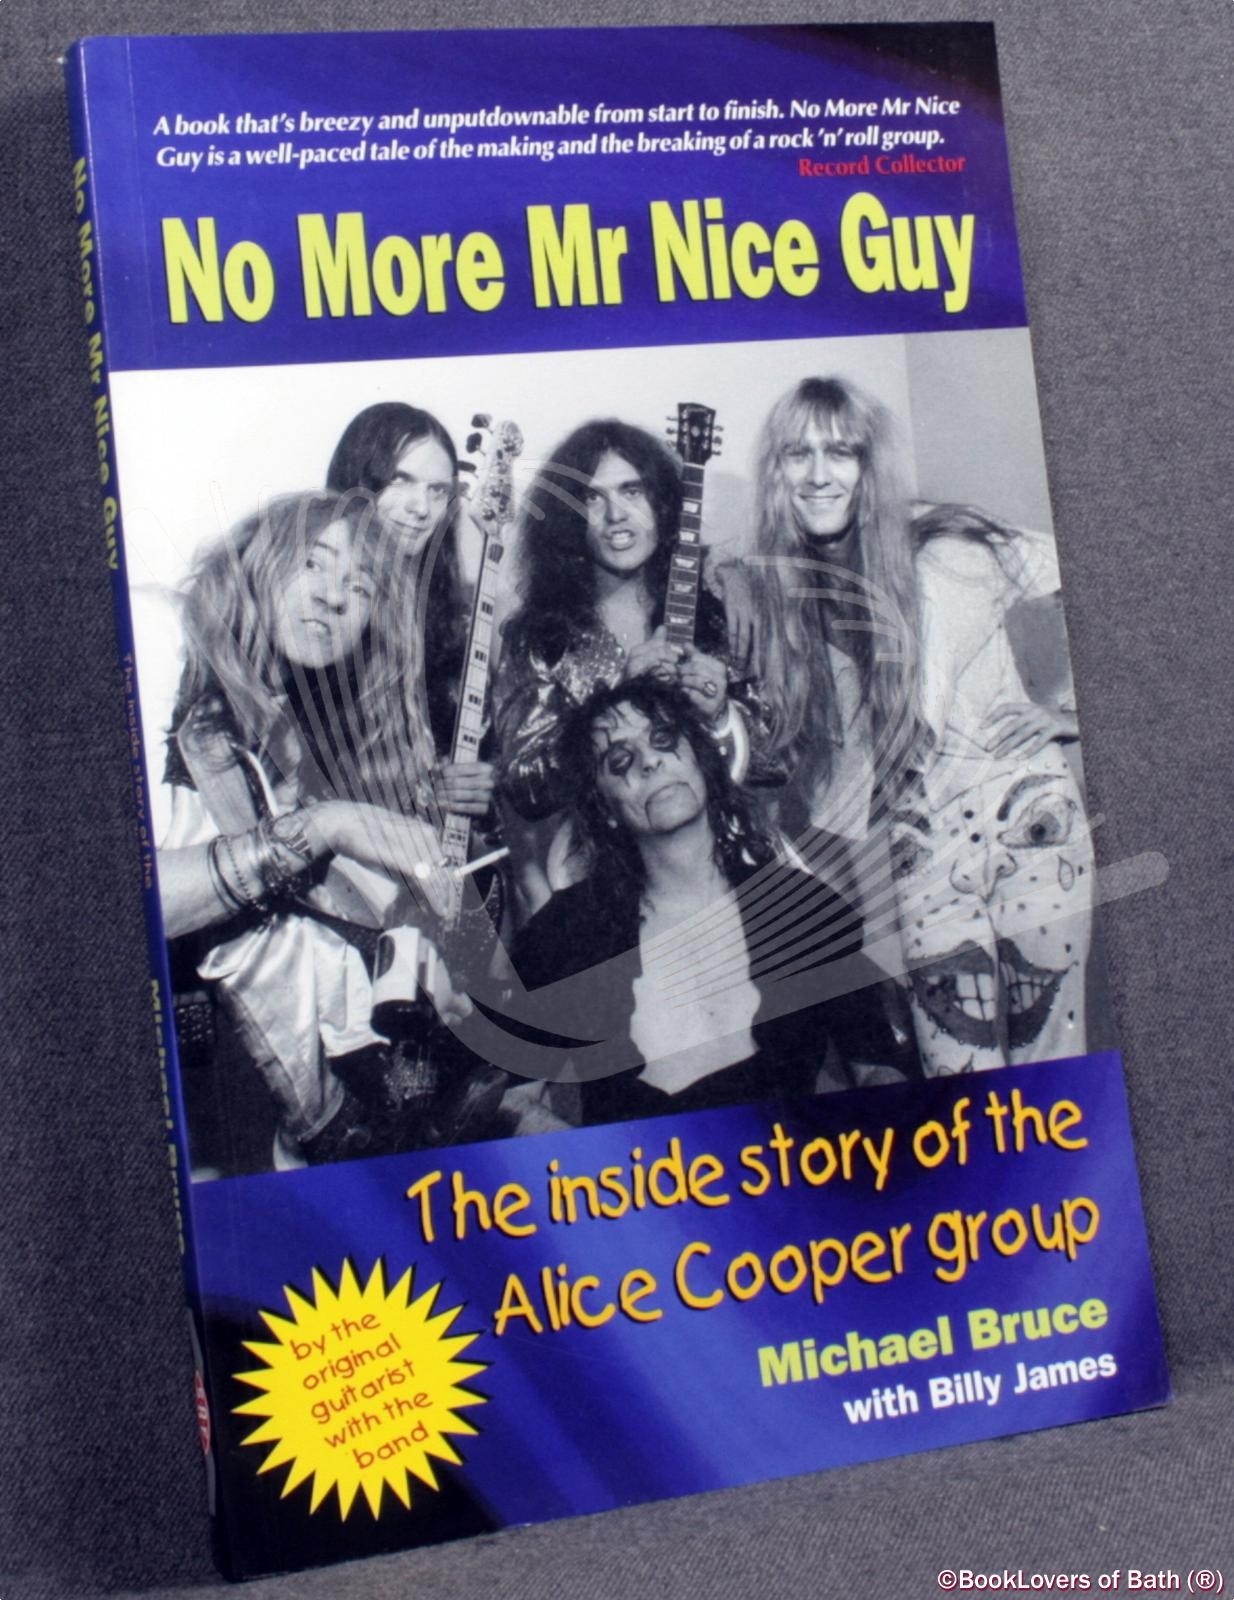 No More Mr Nice Guy: The Inside Story of the Alice Cooper Group - Michael Bruce with Billy James